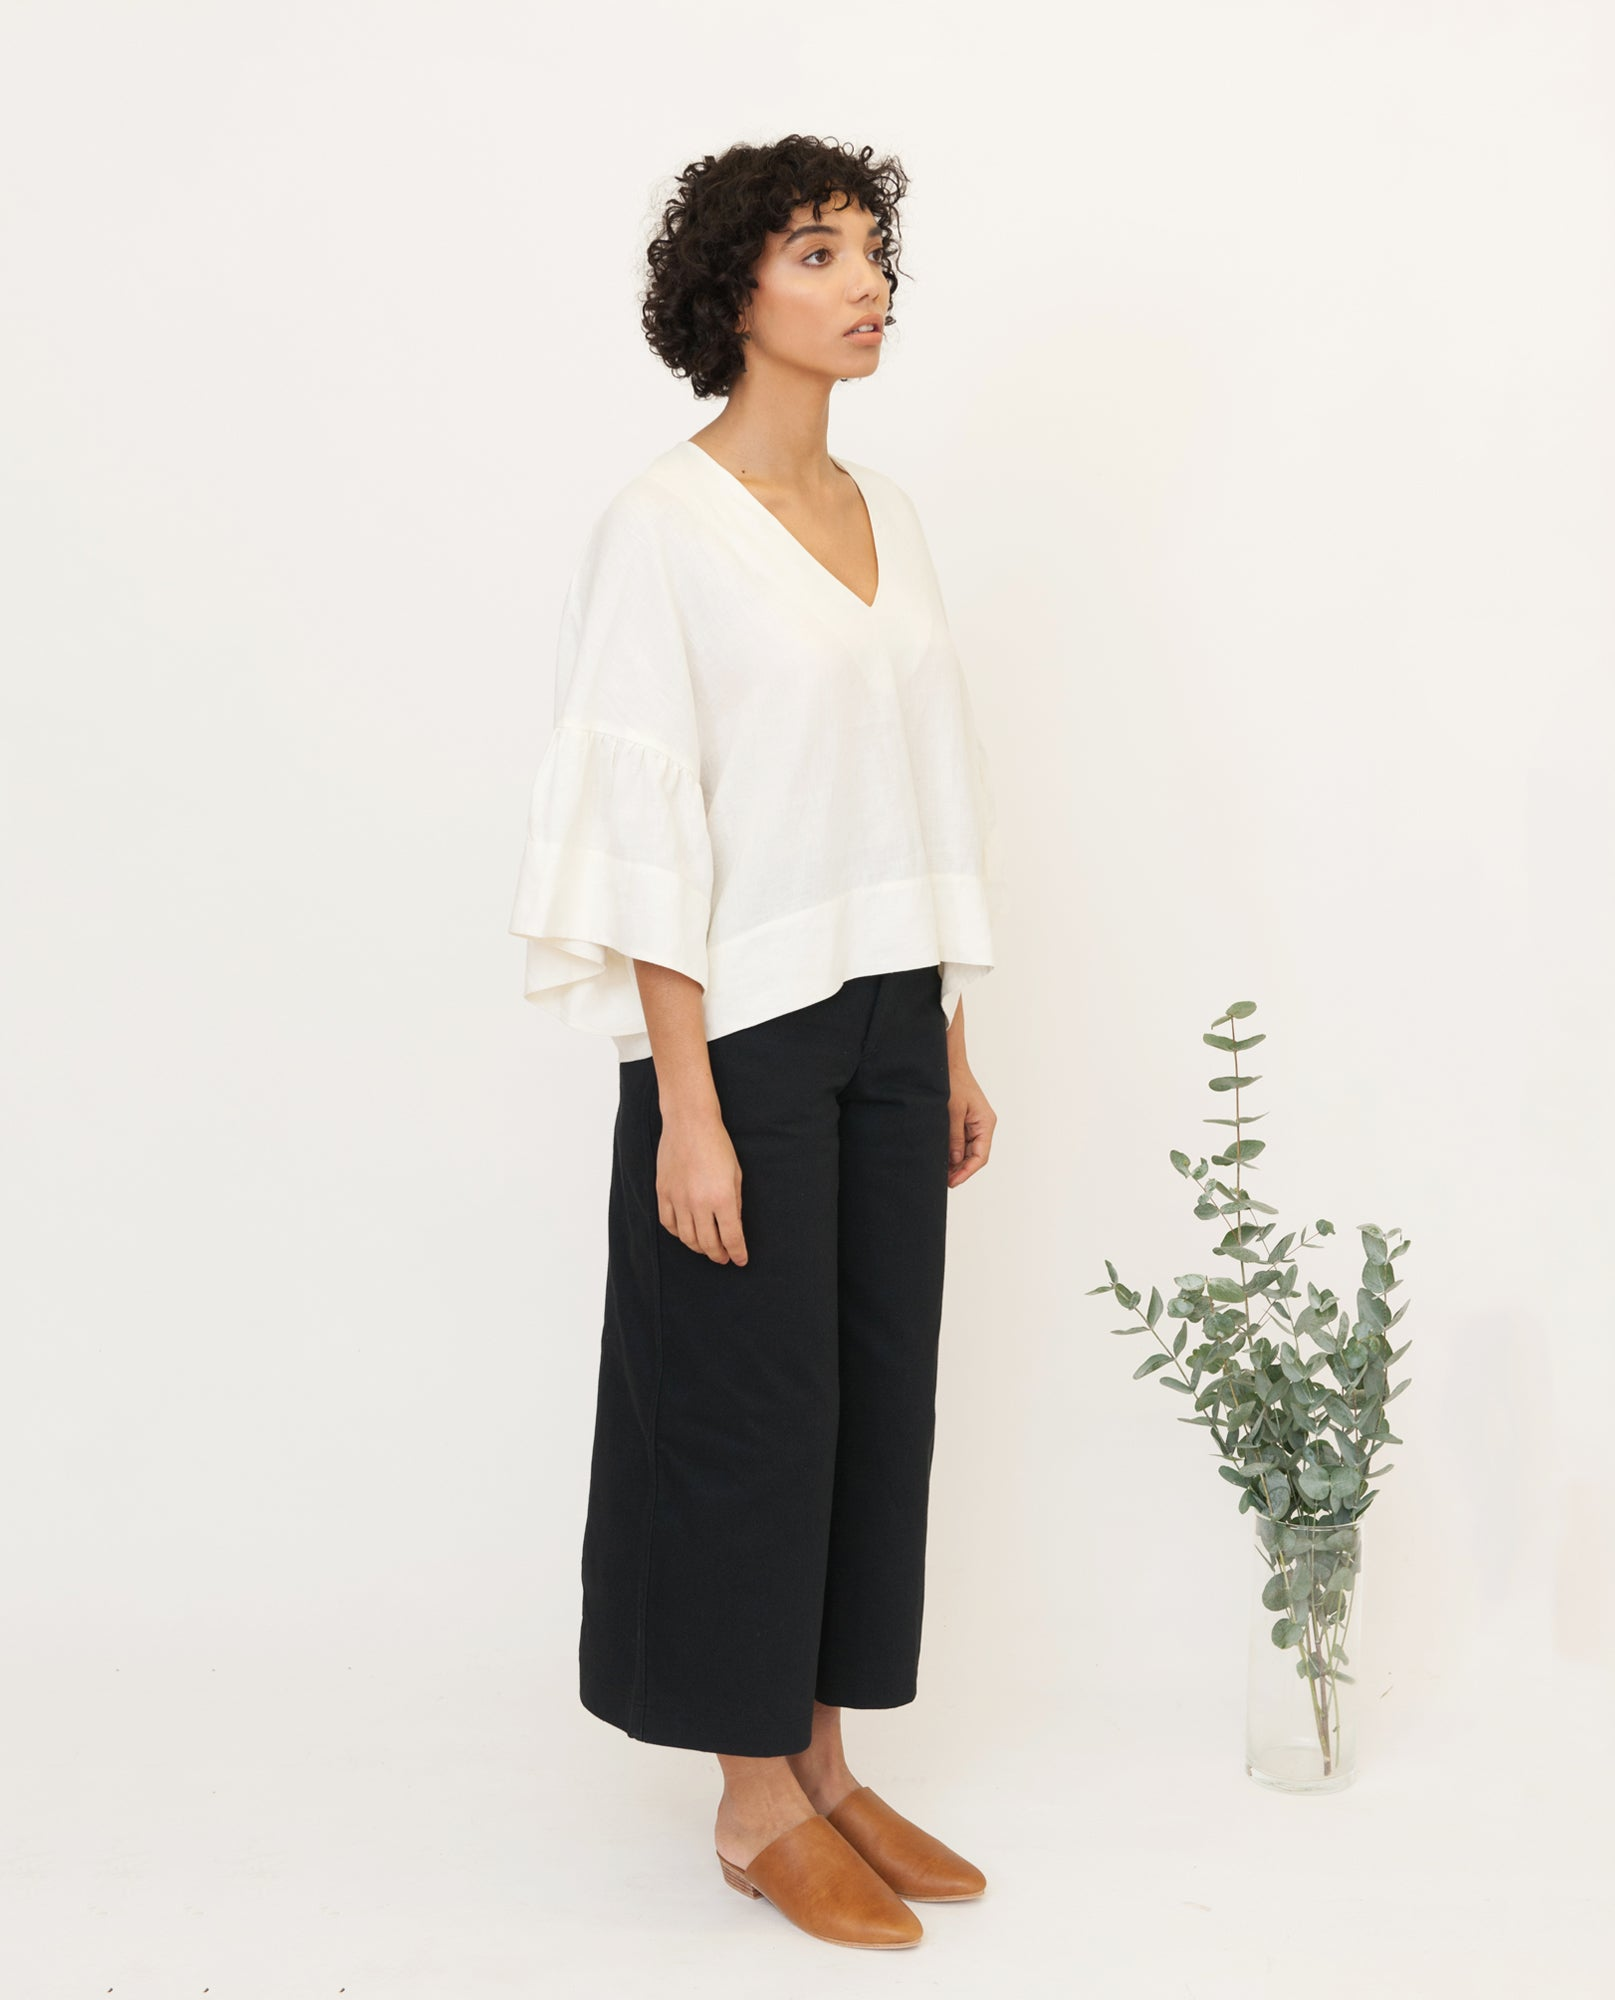 RITA-JO Linen Top In Off White